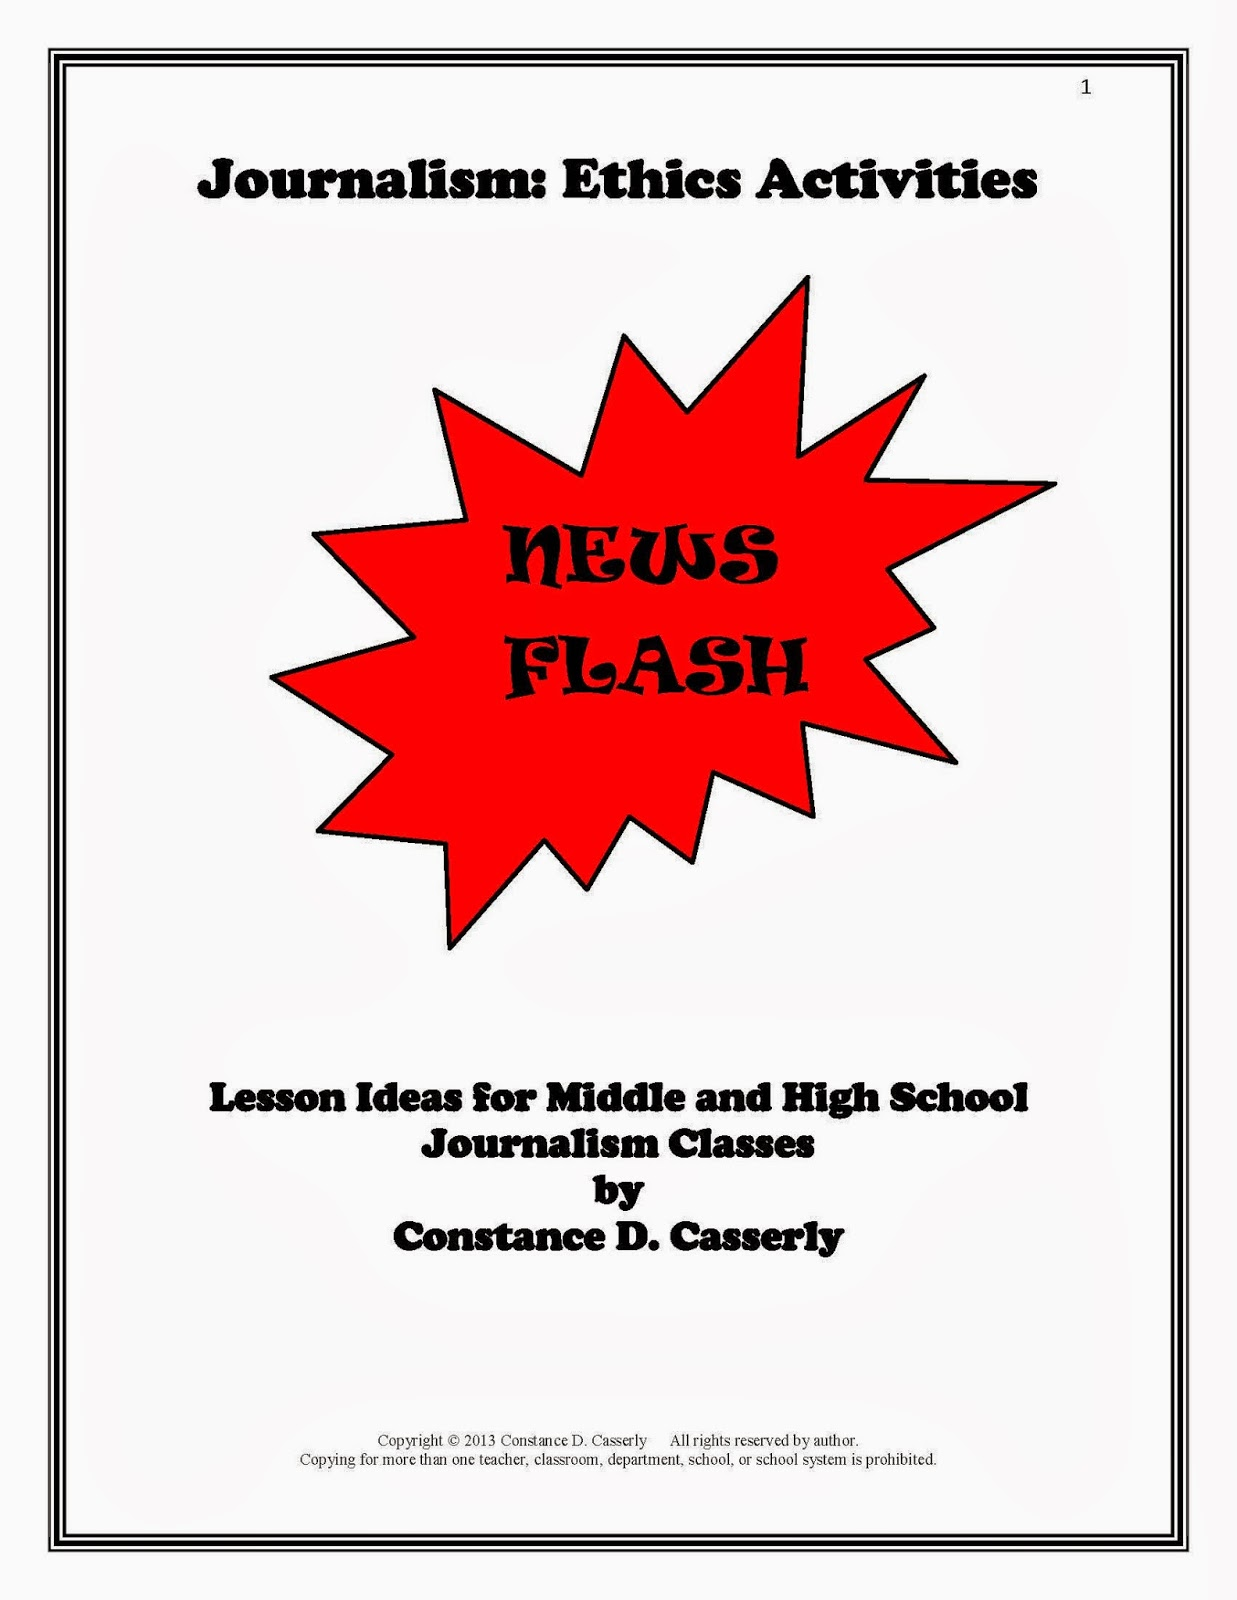 Journalism Ethics Activities cover